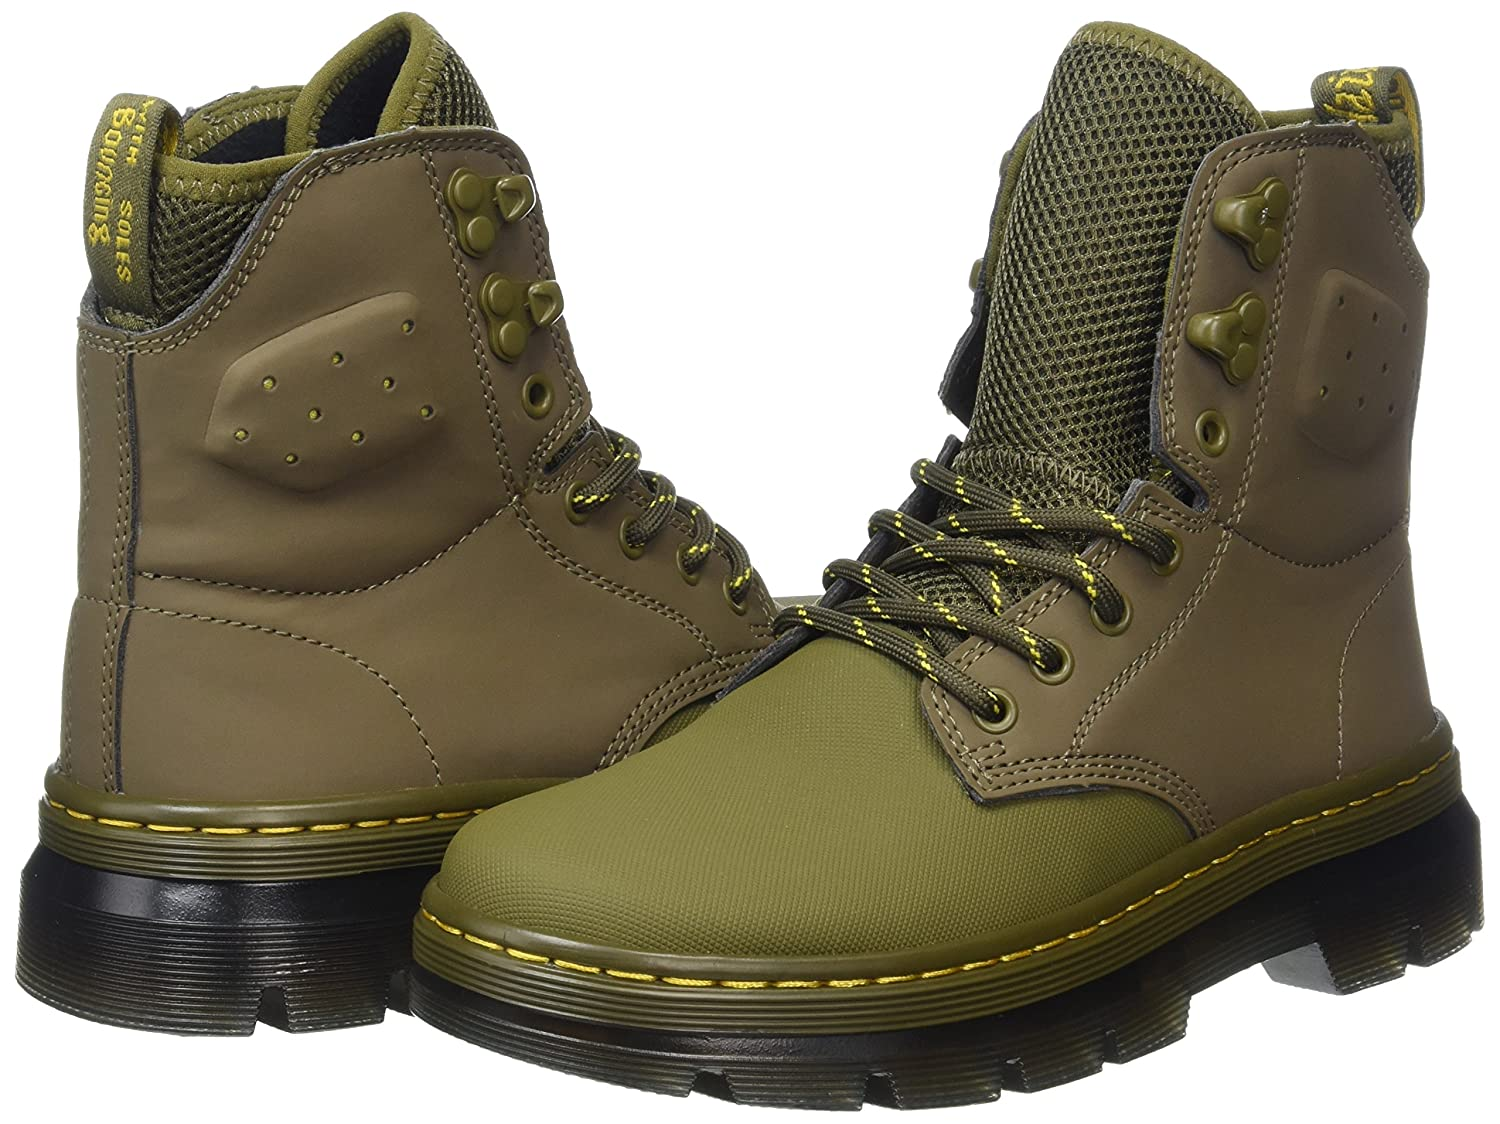 Quinton Mid Olive Ajax+Synthetic Nubuck, Bottes Mixte Adulte, Vert (Mid Olive), 39 EUDr. Martens